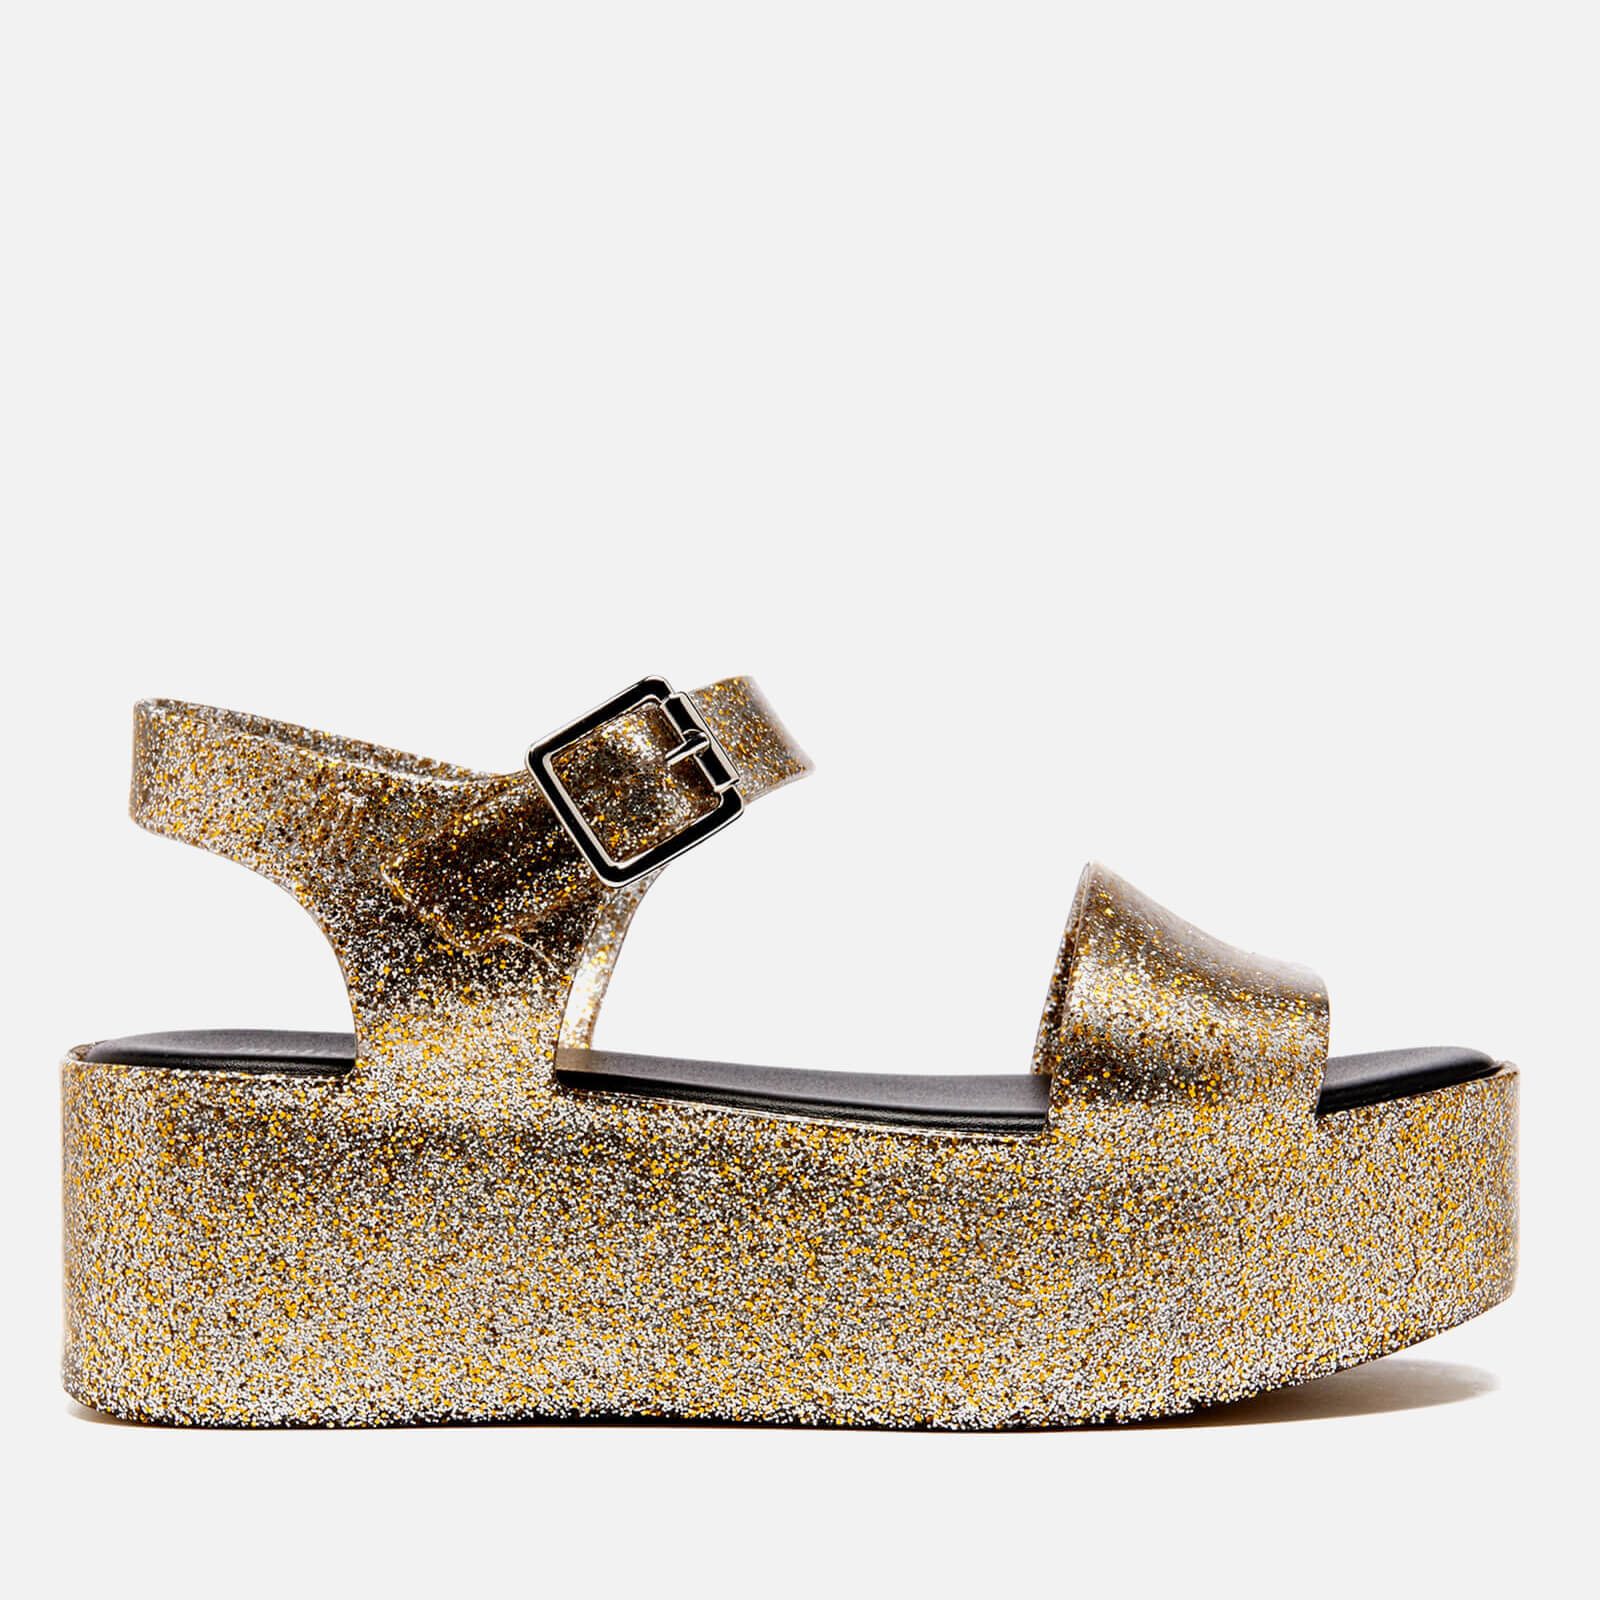 02a49eaa862 Melissa Women s Mar Flatform Sandals - Gold Glitter - Free UK Delivery over  £50